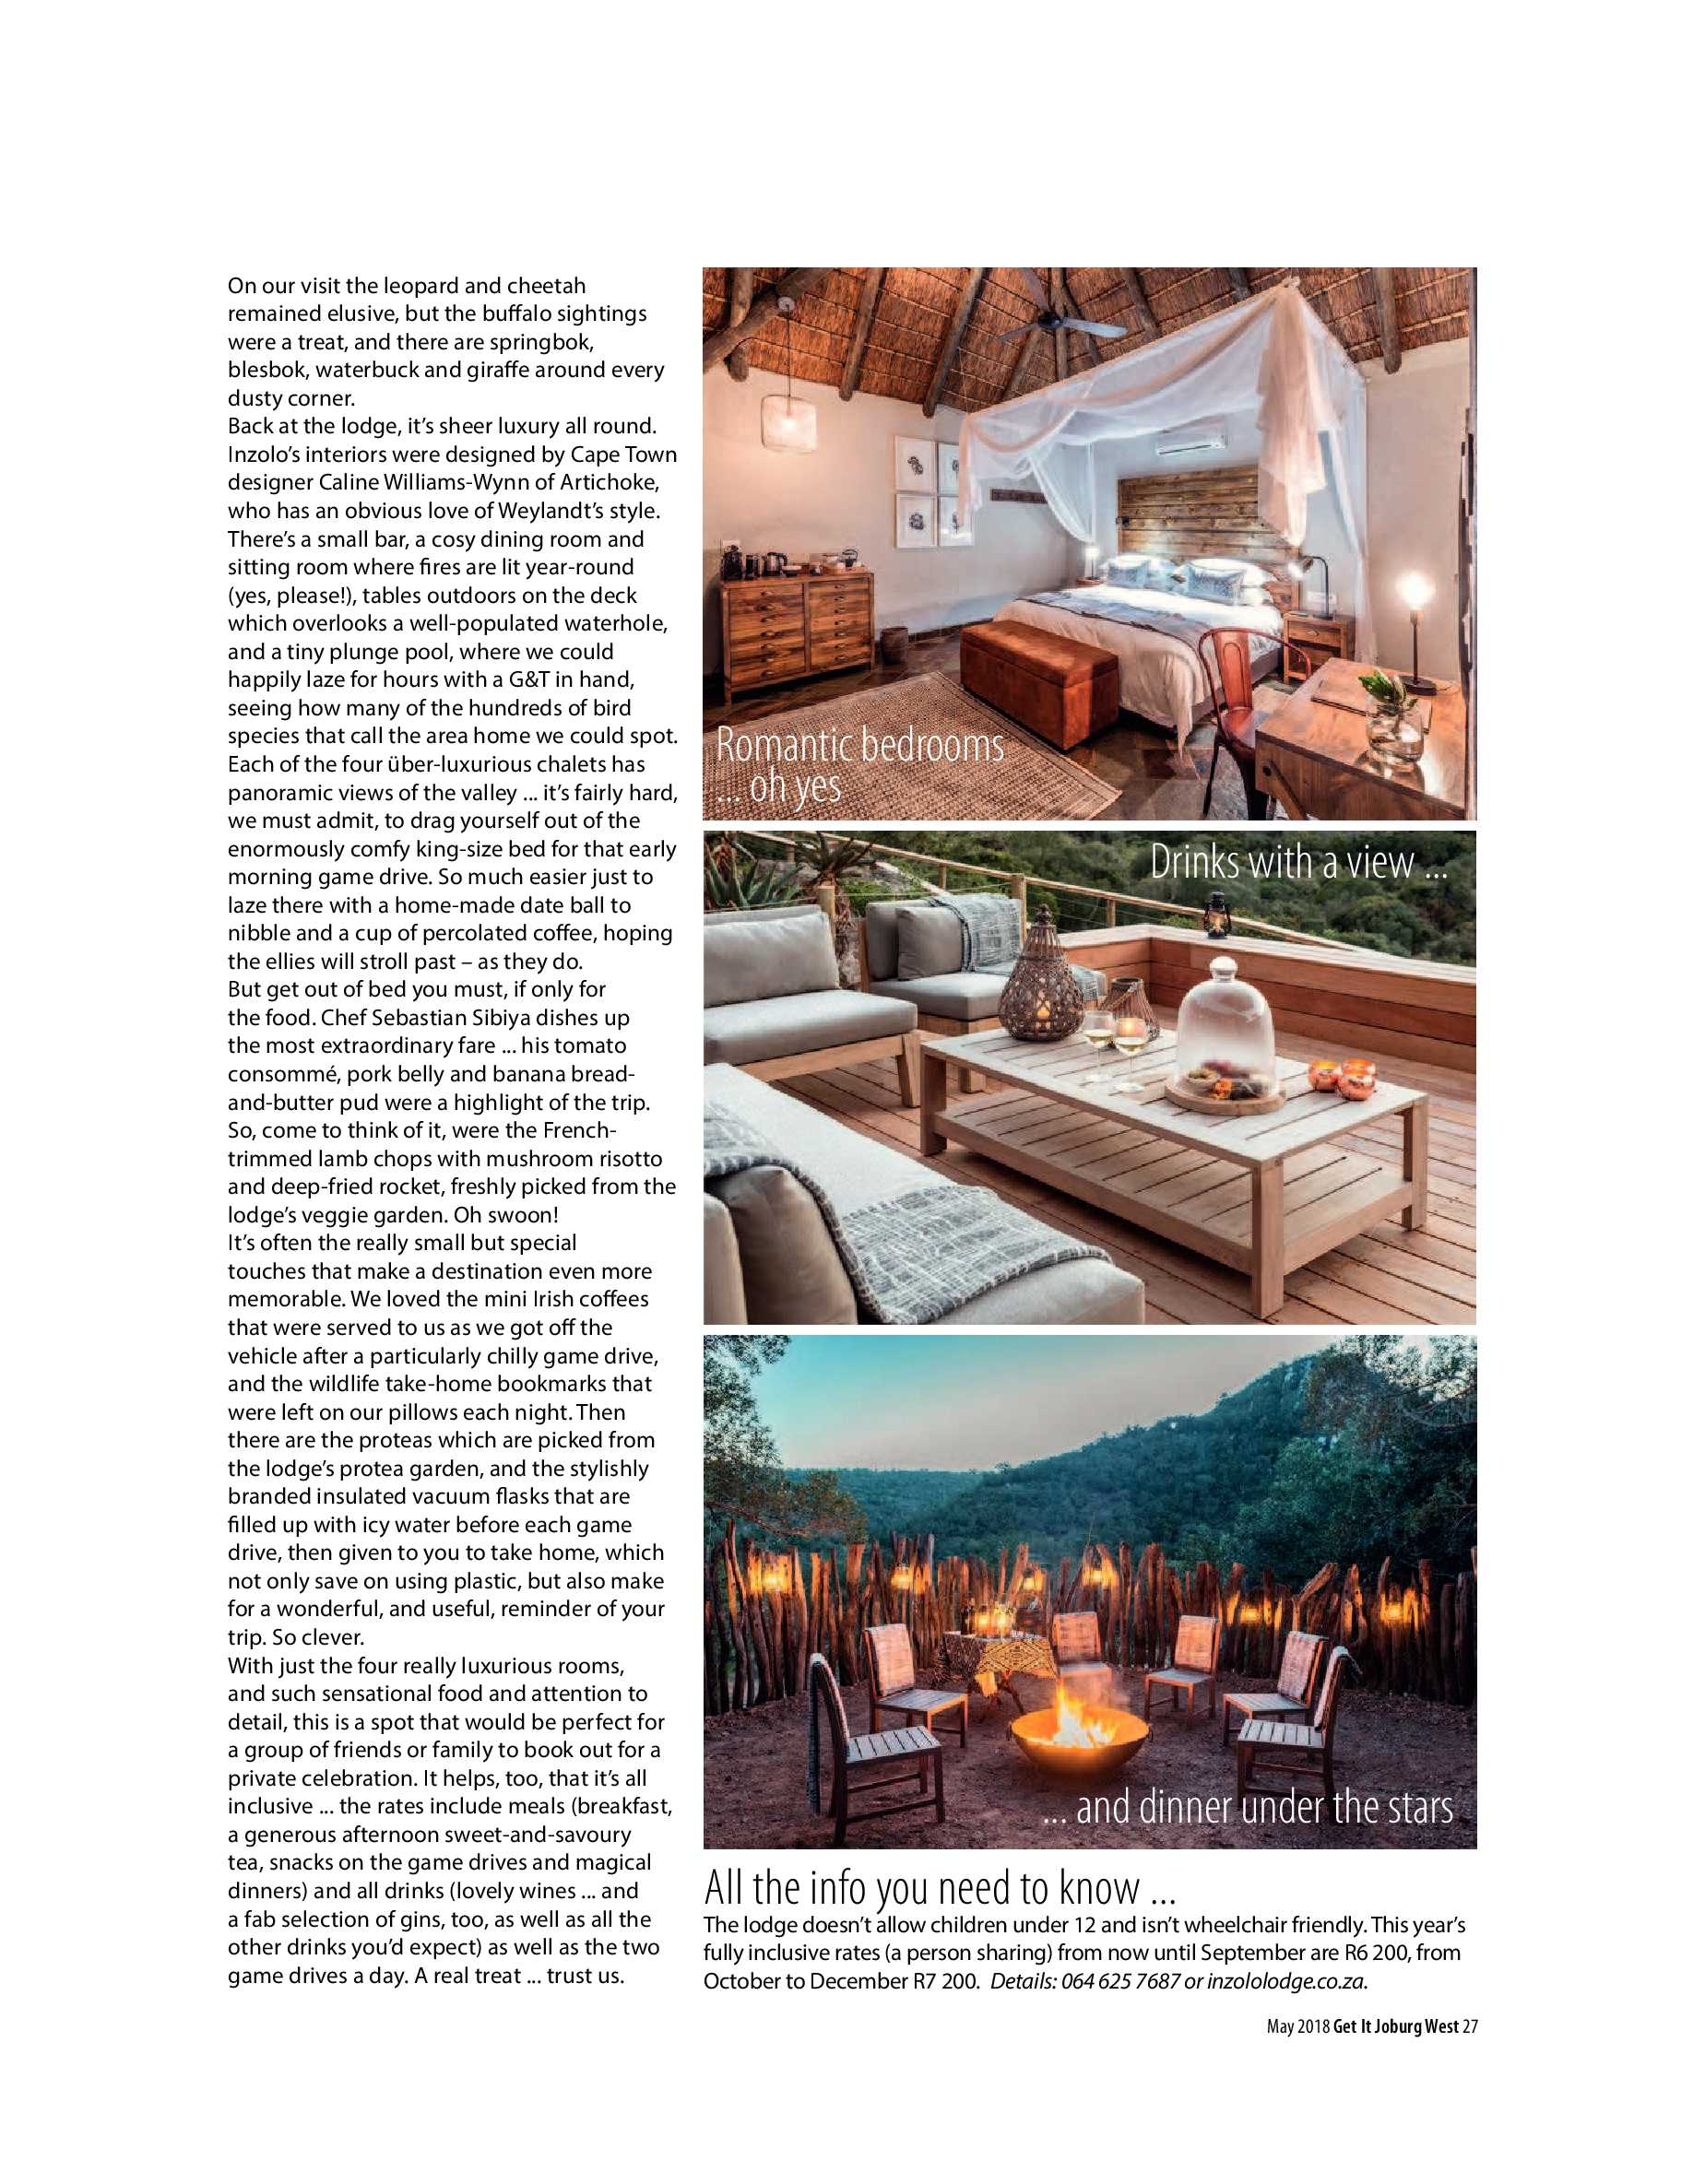 get-jhb-west-may-2018-epapers-page-27